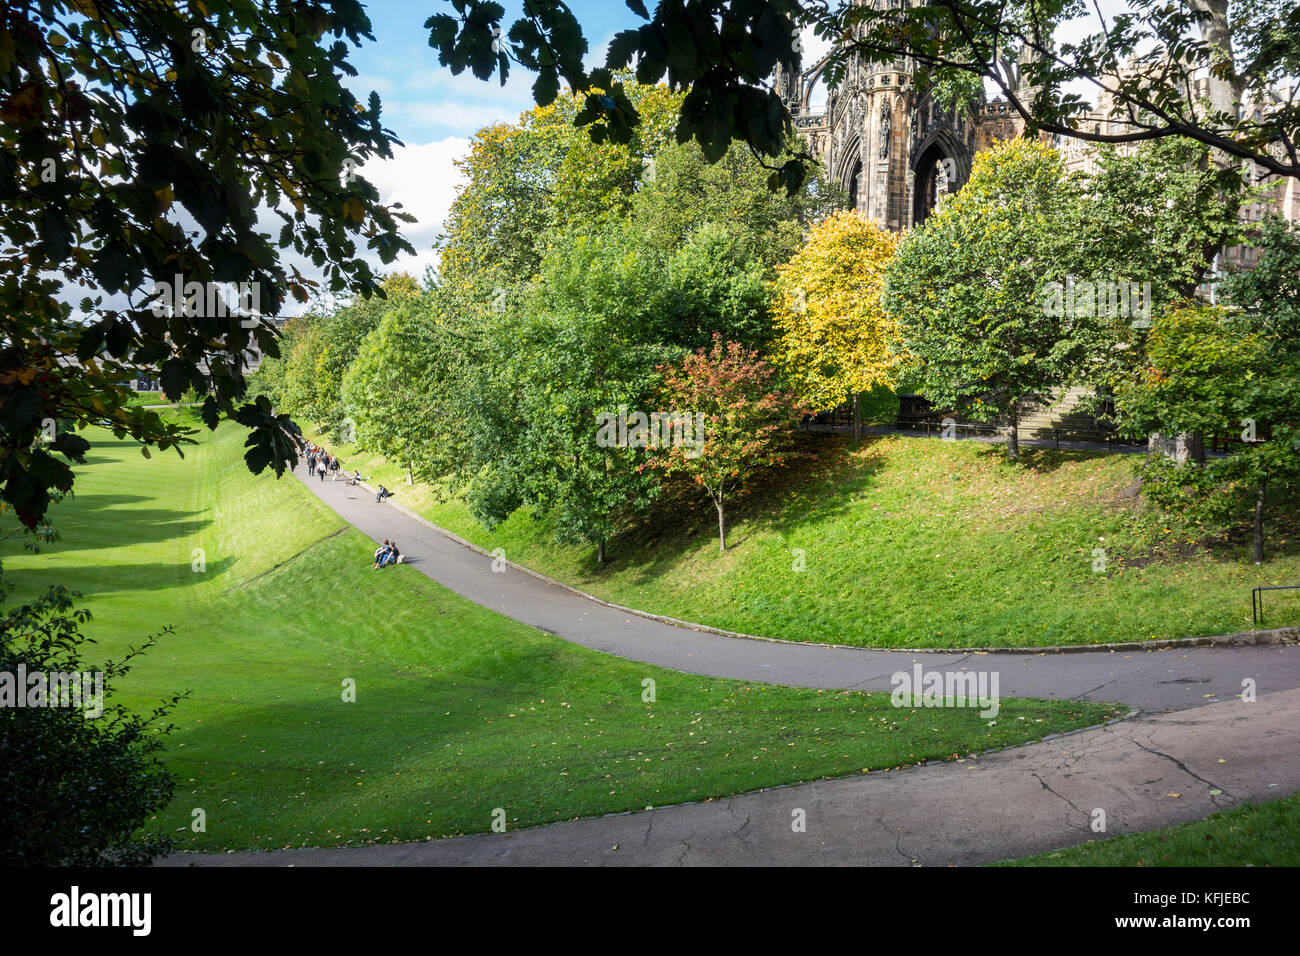 Princes Street Gardens, public park in Edinburgh city centre, Scotland, UK - Stock Image